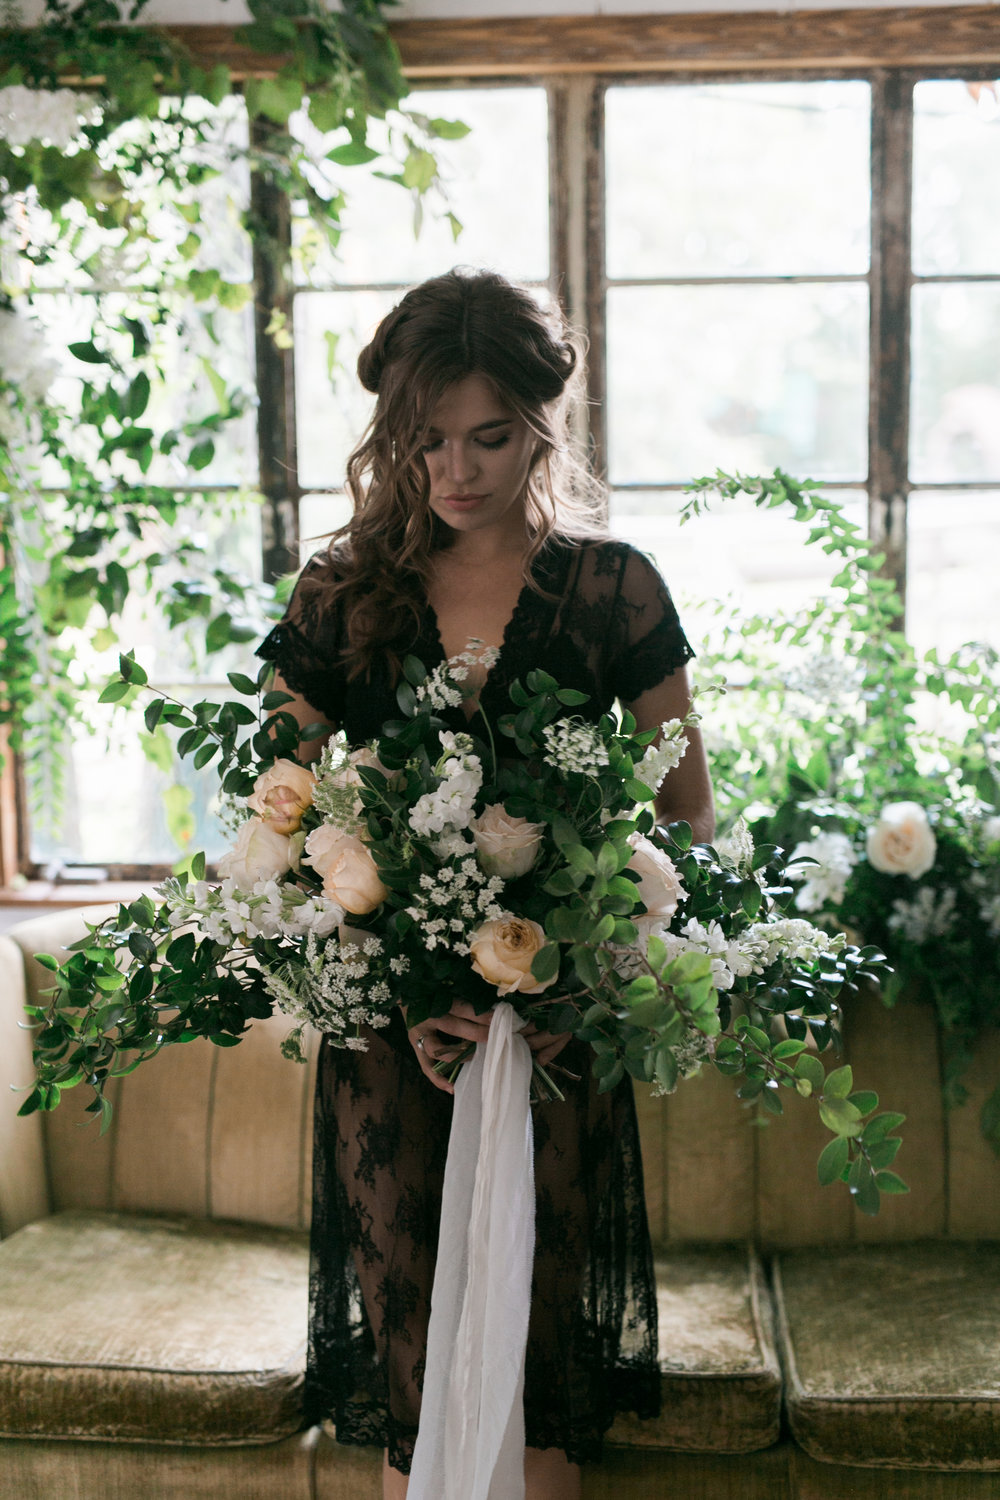 tallahassee_wedding_florist_white_and_pink_bouquet_moonstruck_florals.jpg